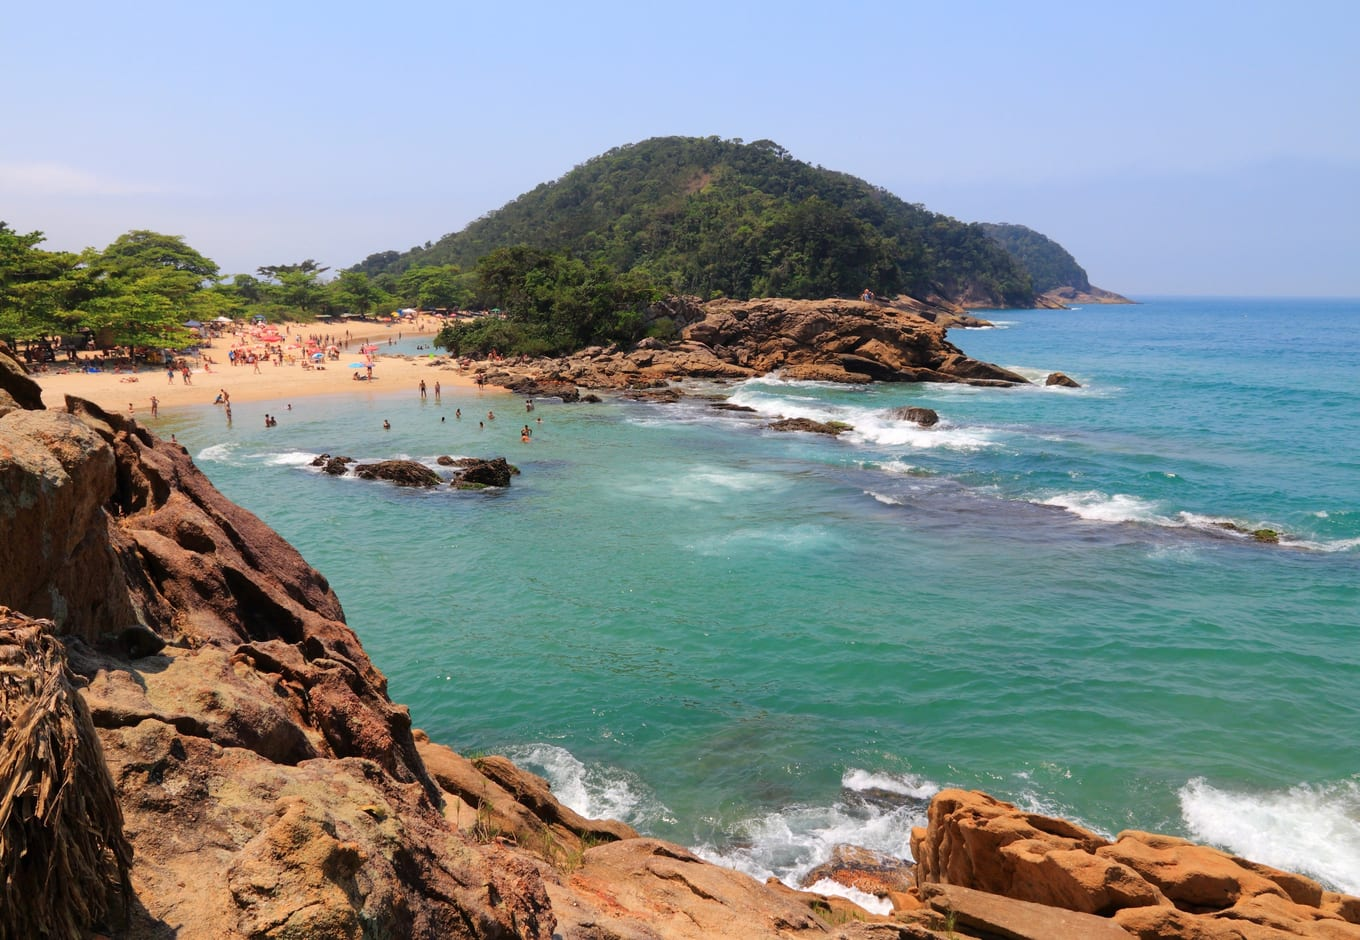 The blue-green ocean surrounded by rocks and a forested hill on Trindade Beach, Brasil.